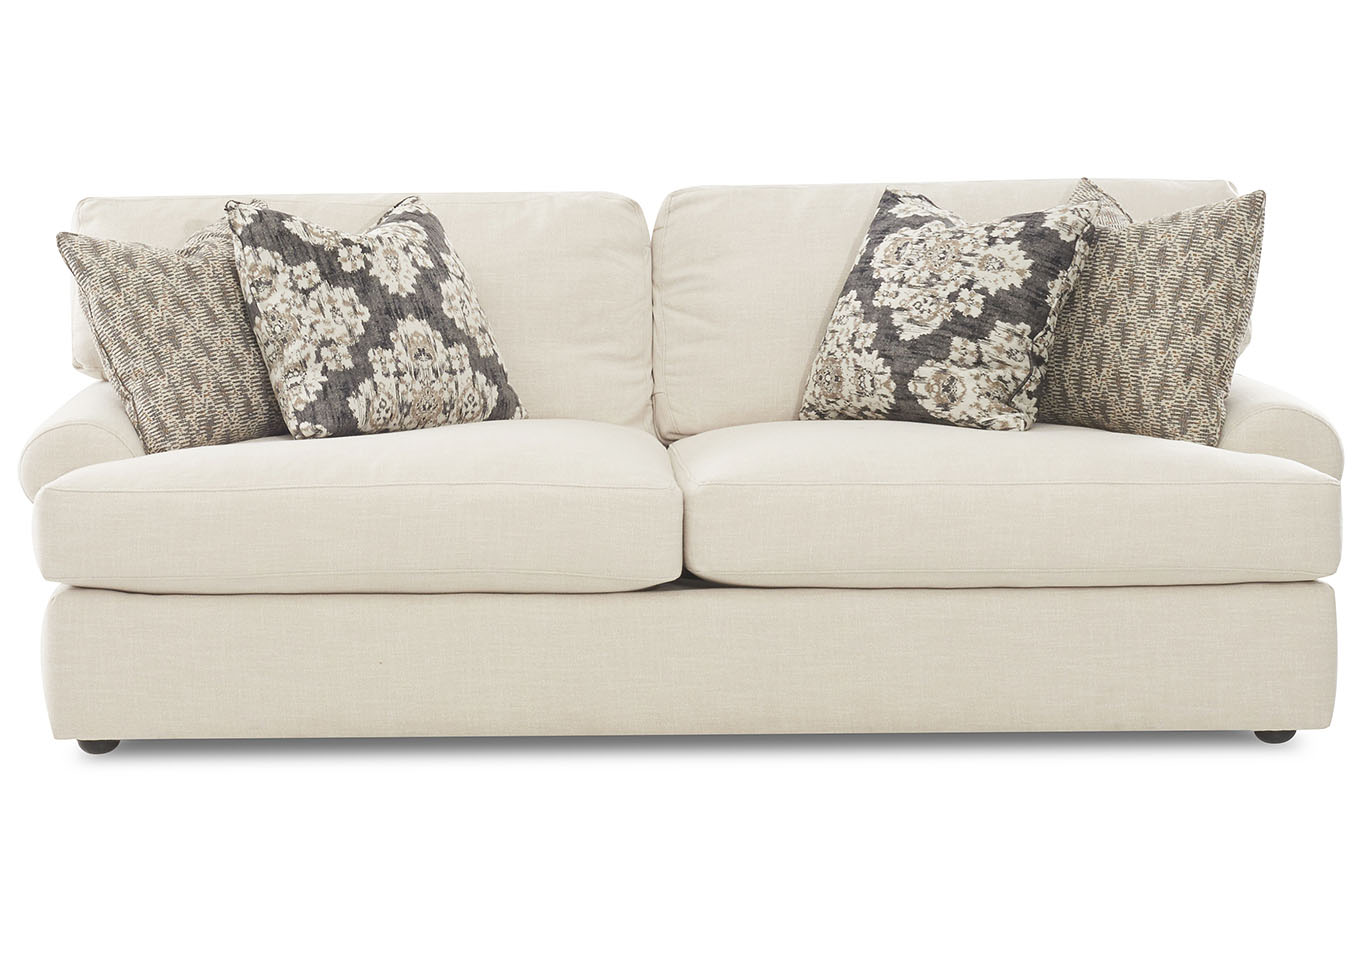 Adelyn Baldwin Lace Stationary Fabric Sofa,Klaussner Home Furnishings